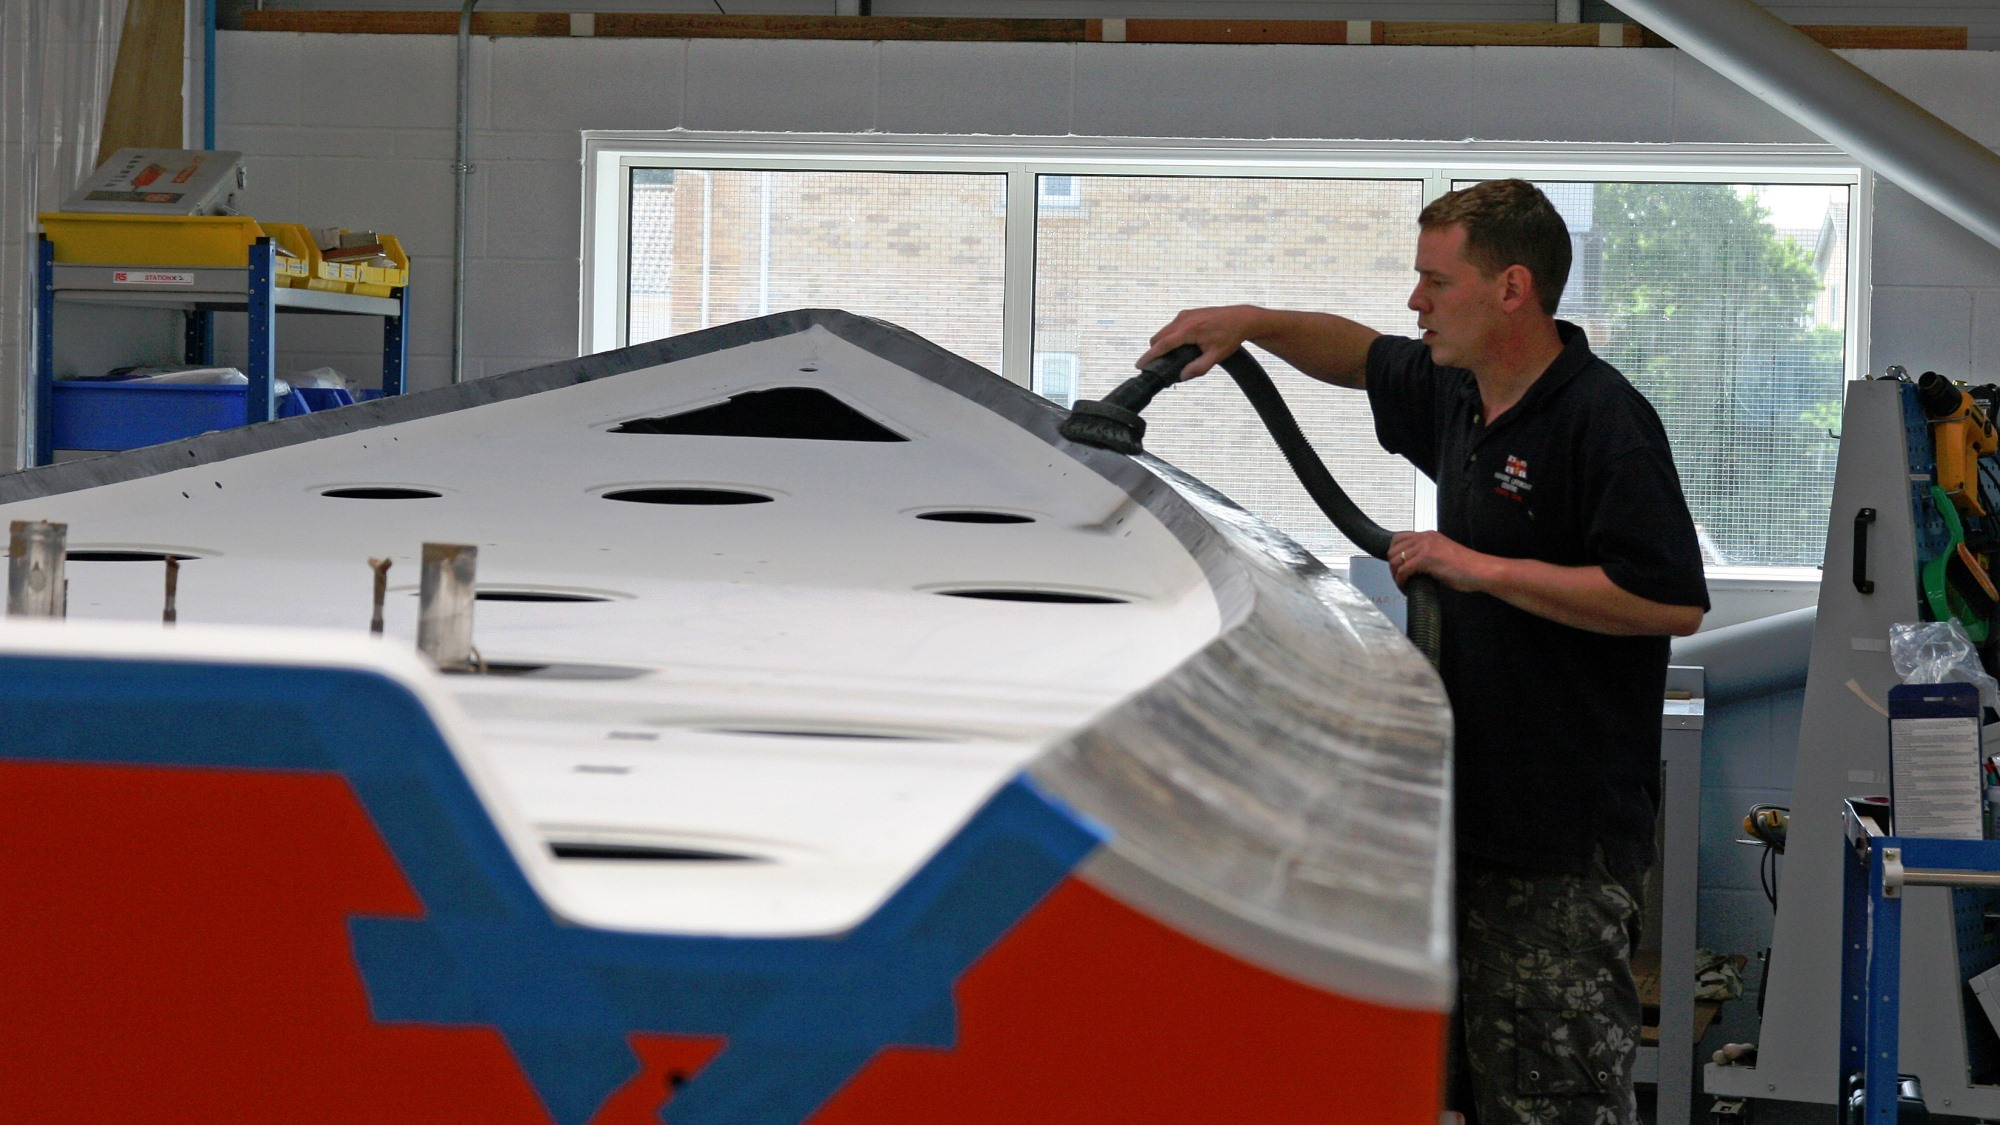 Engineer working on the hull of an inshore B class Atlantic lifeboat at the Inshore Lifeboat Centre